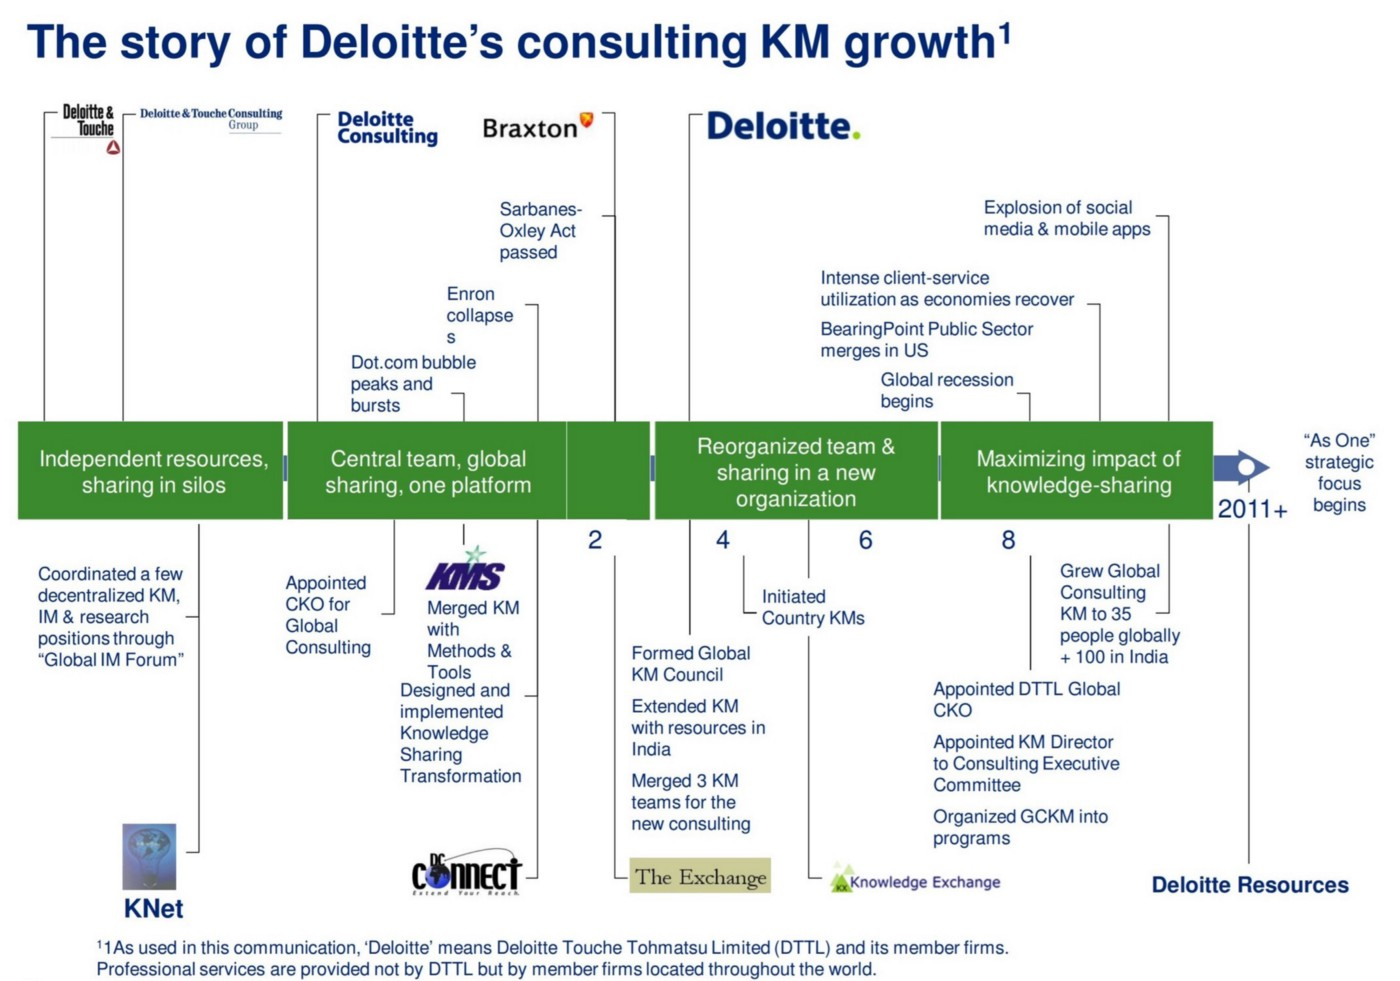 Deloitte: Profiles in Knowledge - Stan Garfield - Medium